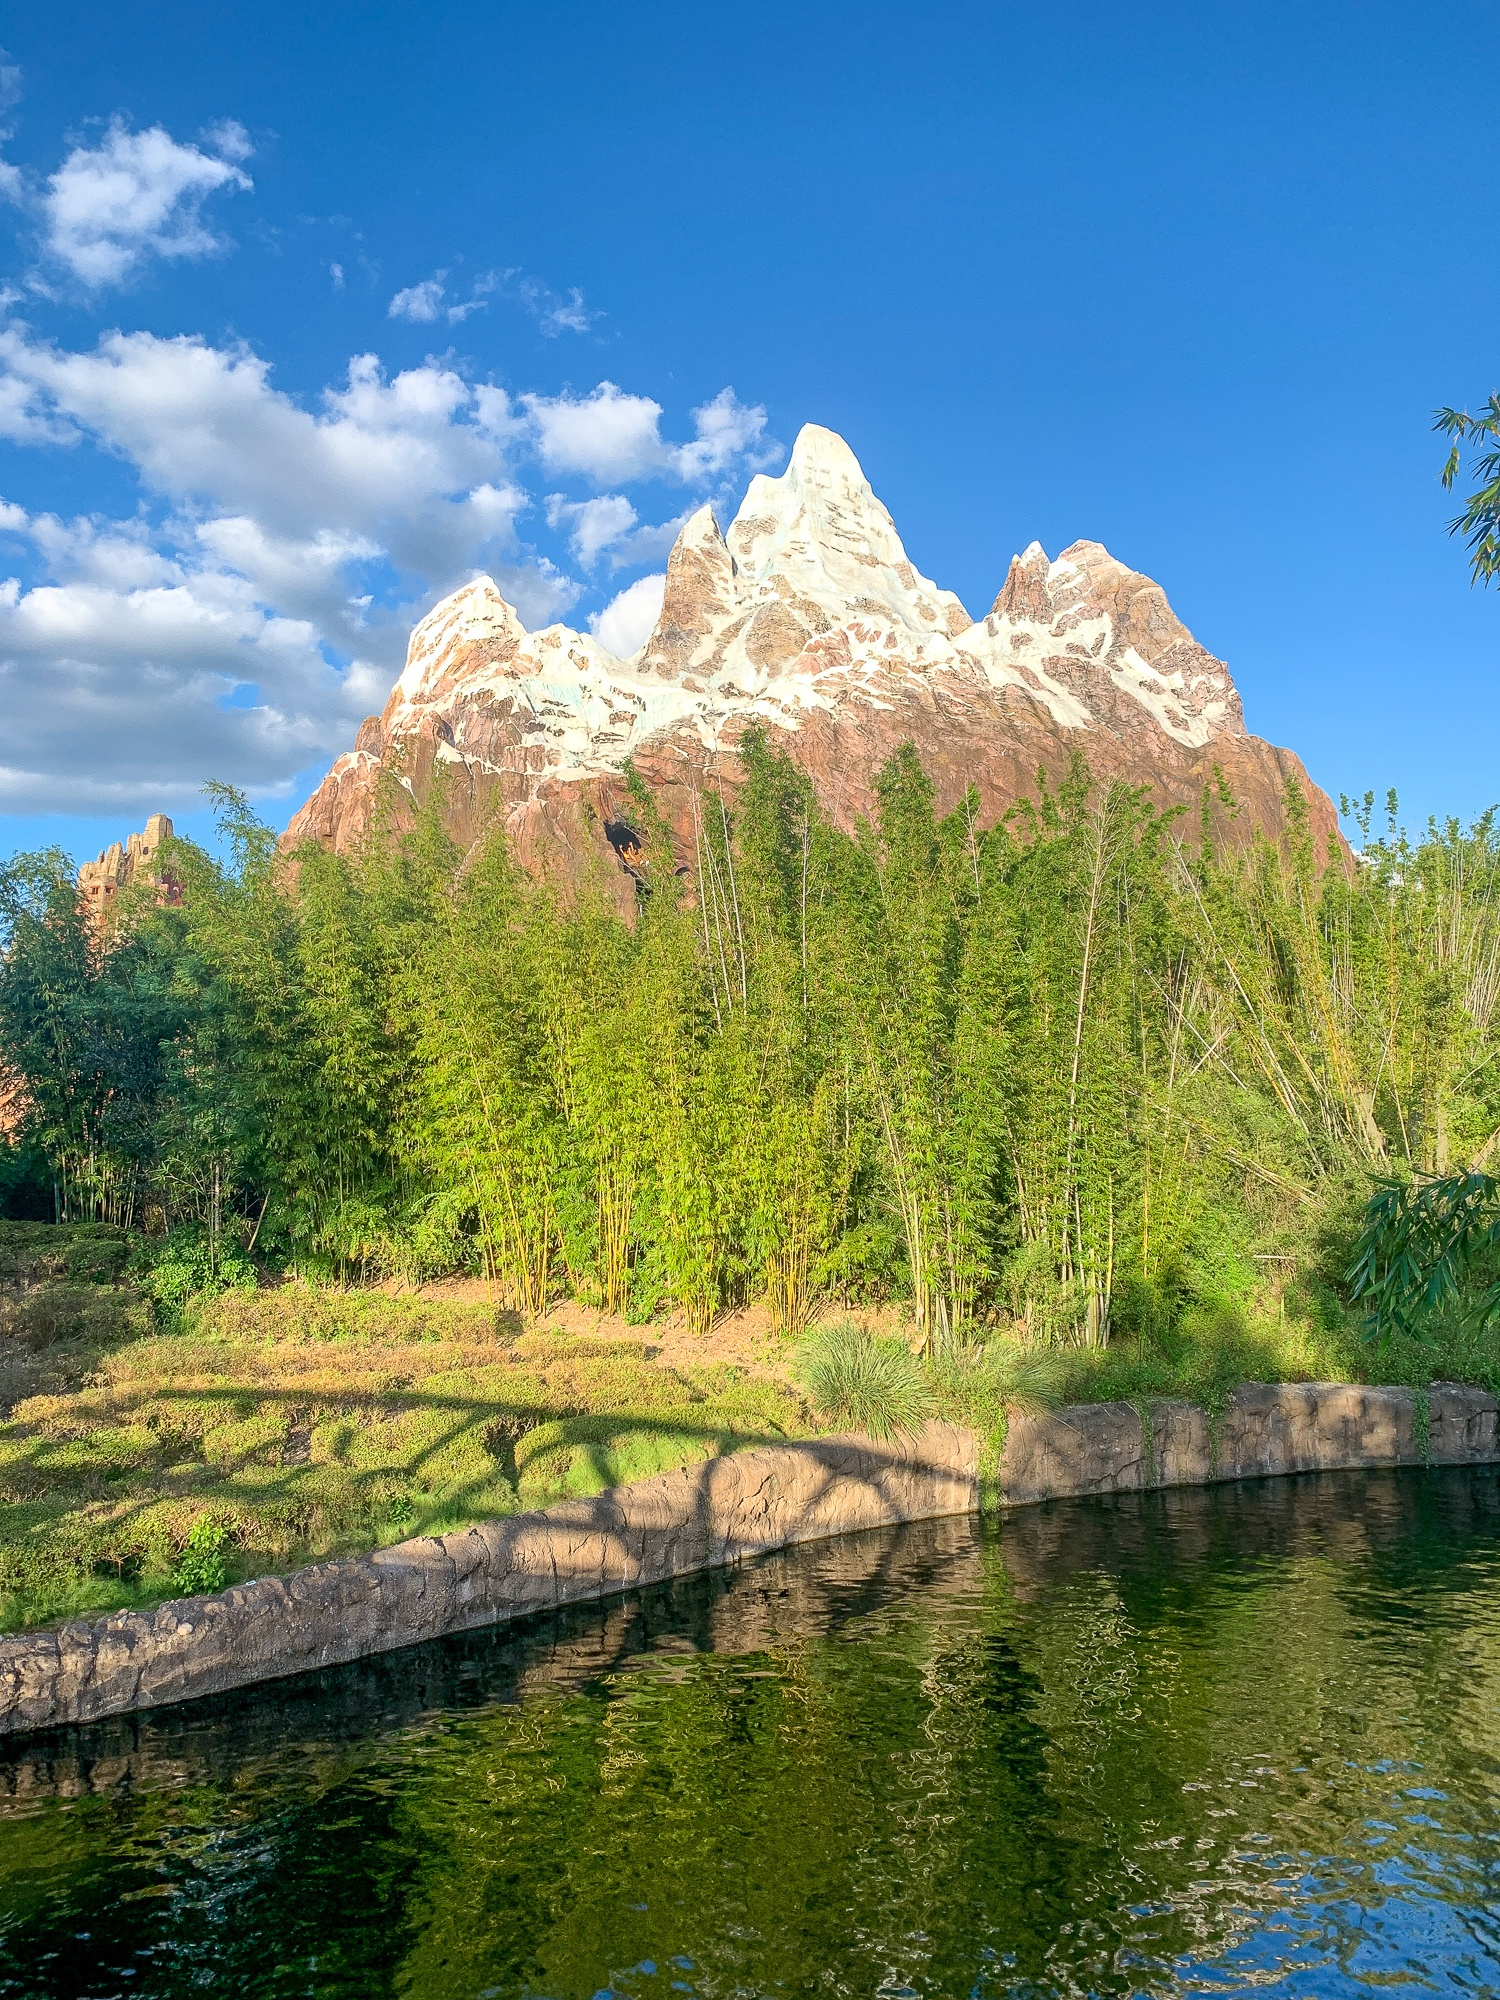 FASTPASS ride, Expedition Everest at Disney's Animal Kingdom